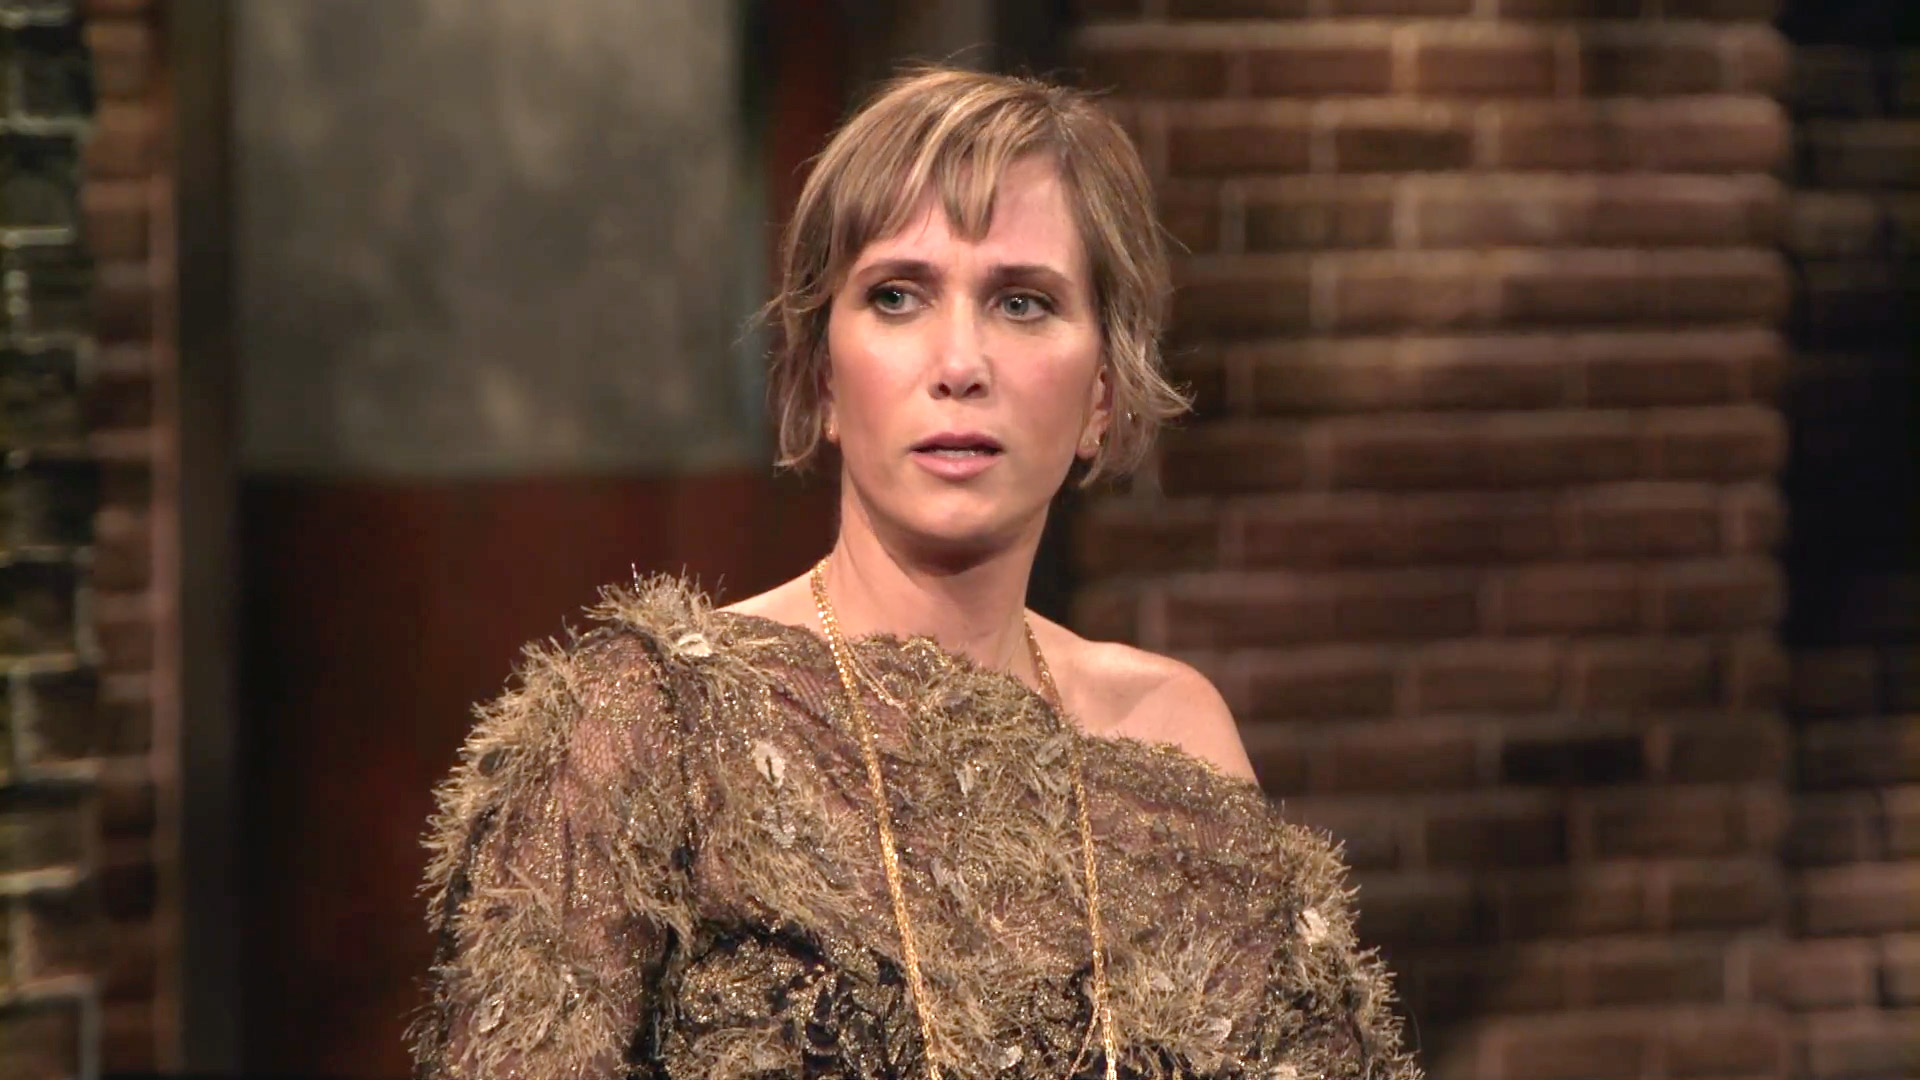 The Most Valuable Lessons Kristen Wiig Learned at The Groudlings